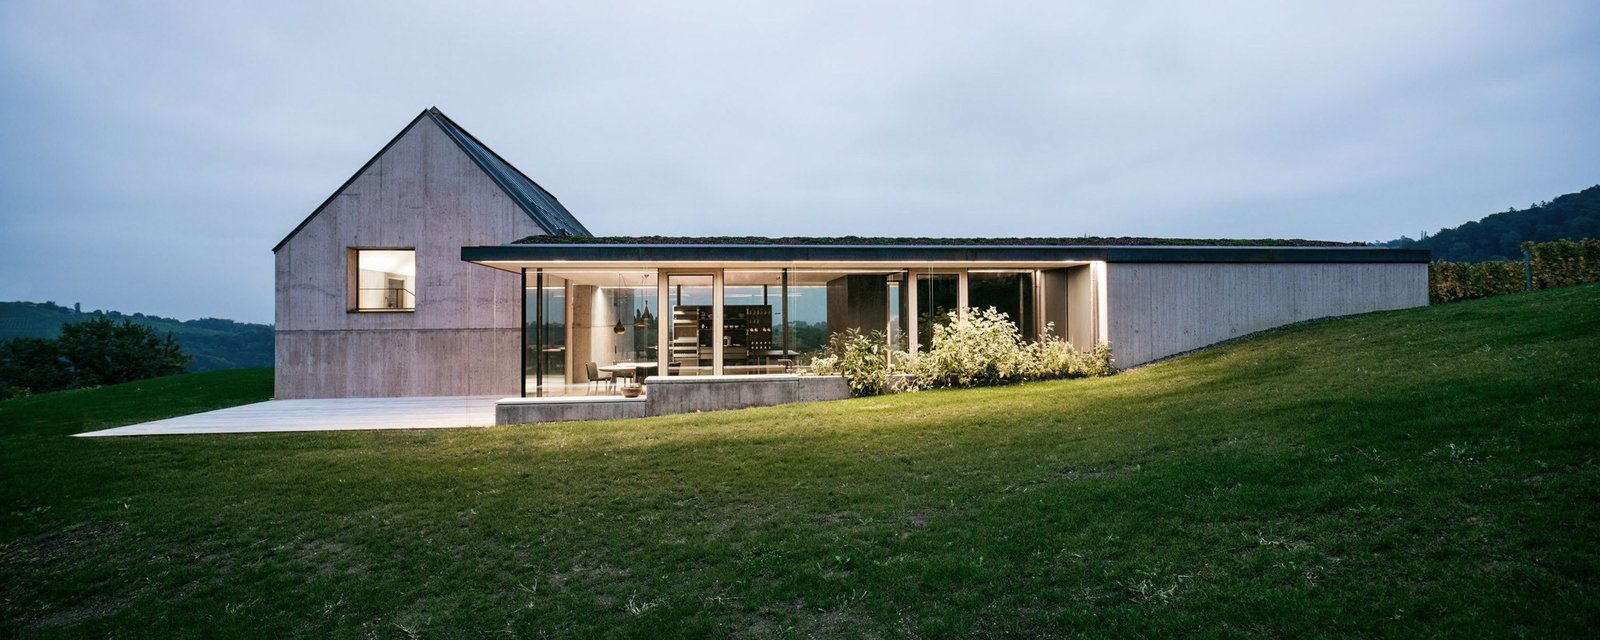 Photo 1 of 15 in A Former Wine Press House Becomes a Modern Vineyard Home